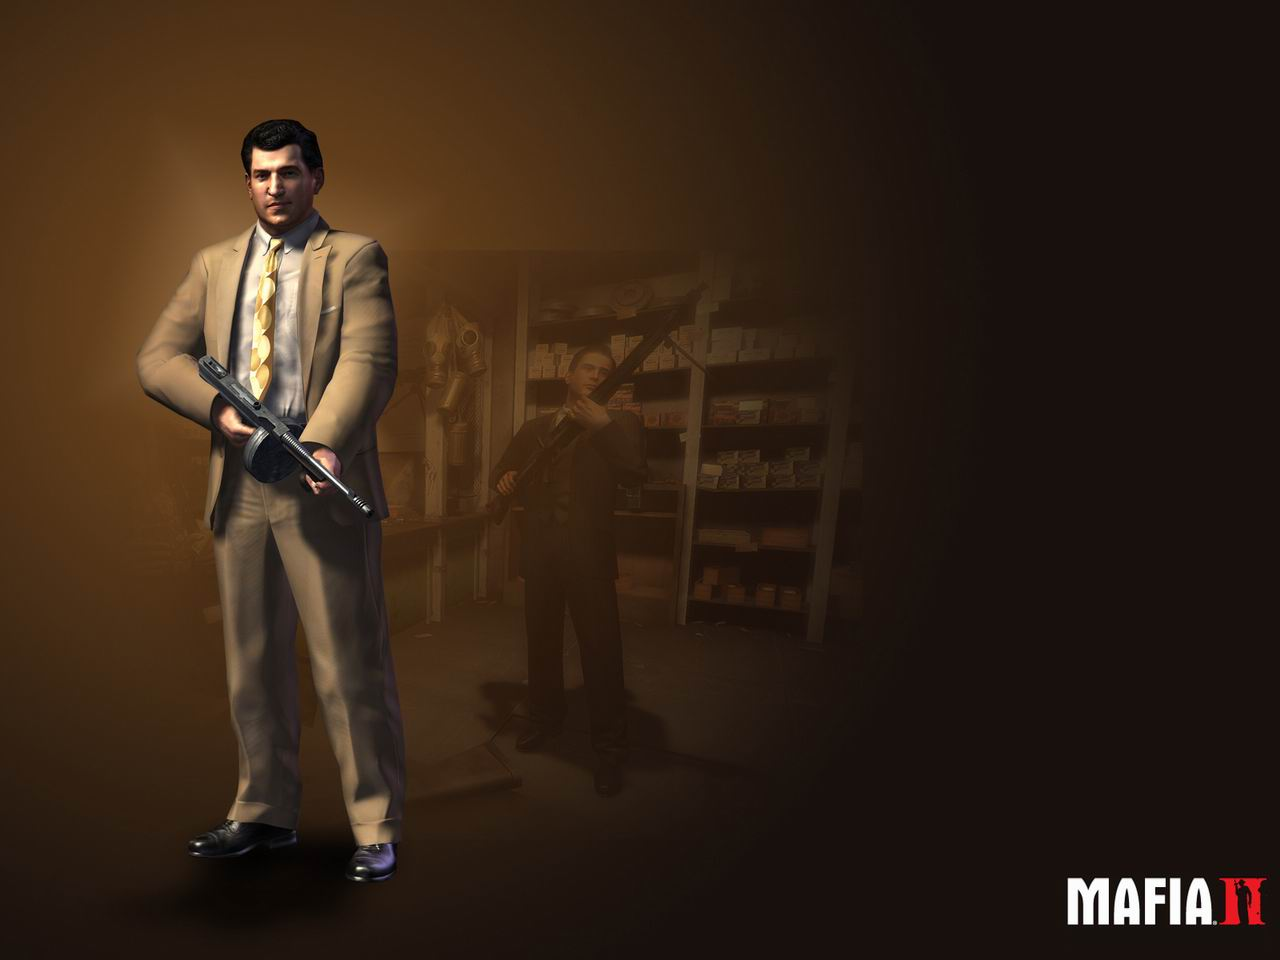 Free Download Mafia 2 Hd Wallpaper Pack Bildergalerie Mafia